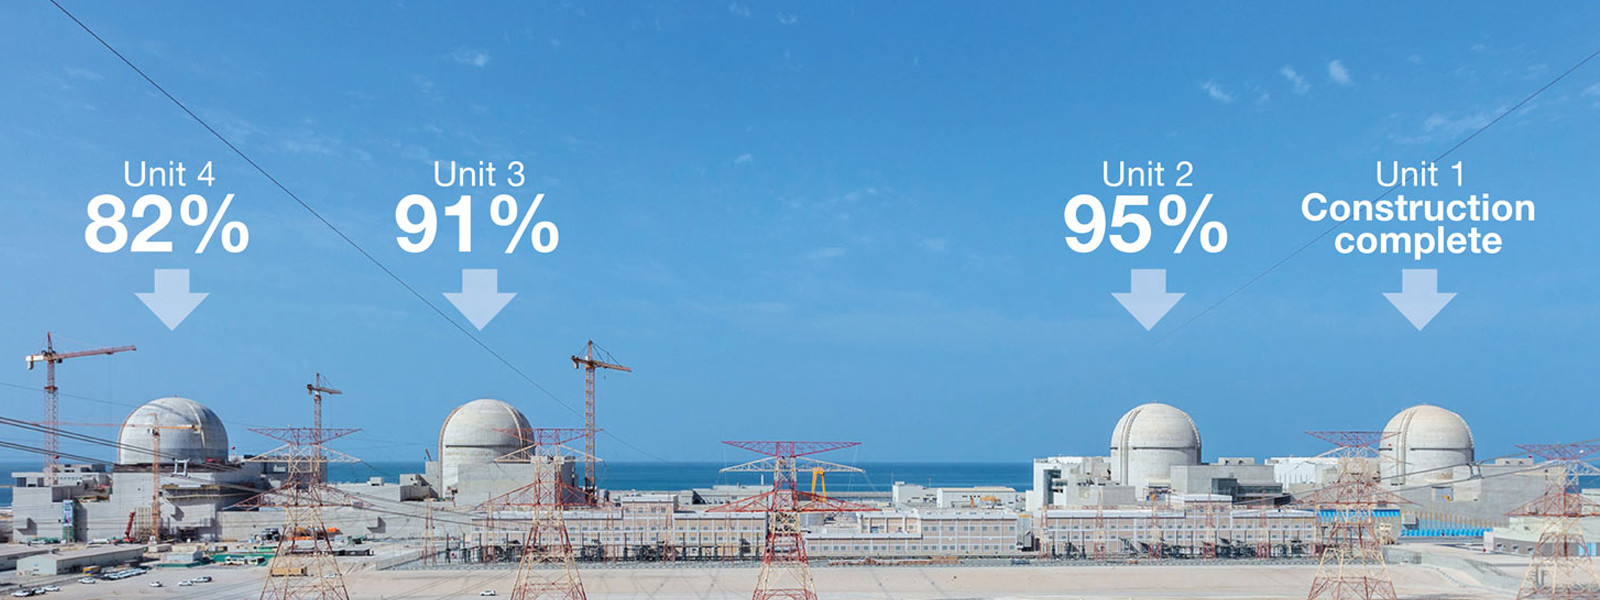 The Barakah Nuclear Energy Plant - December 2018